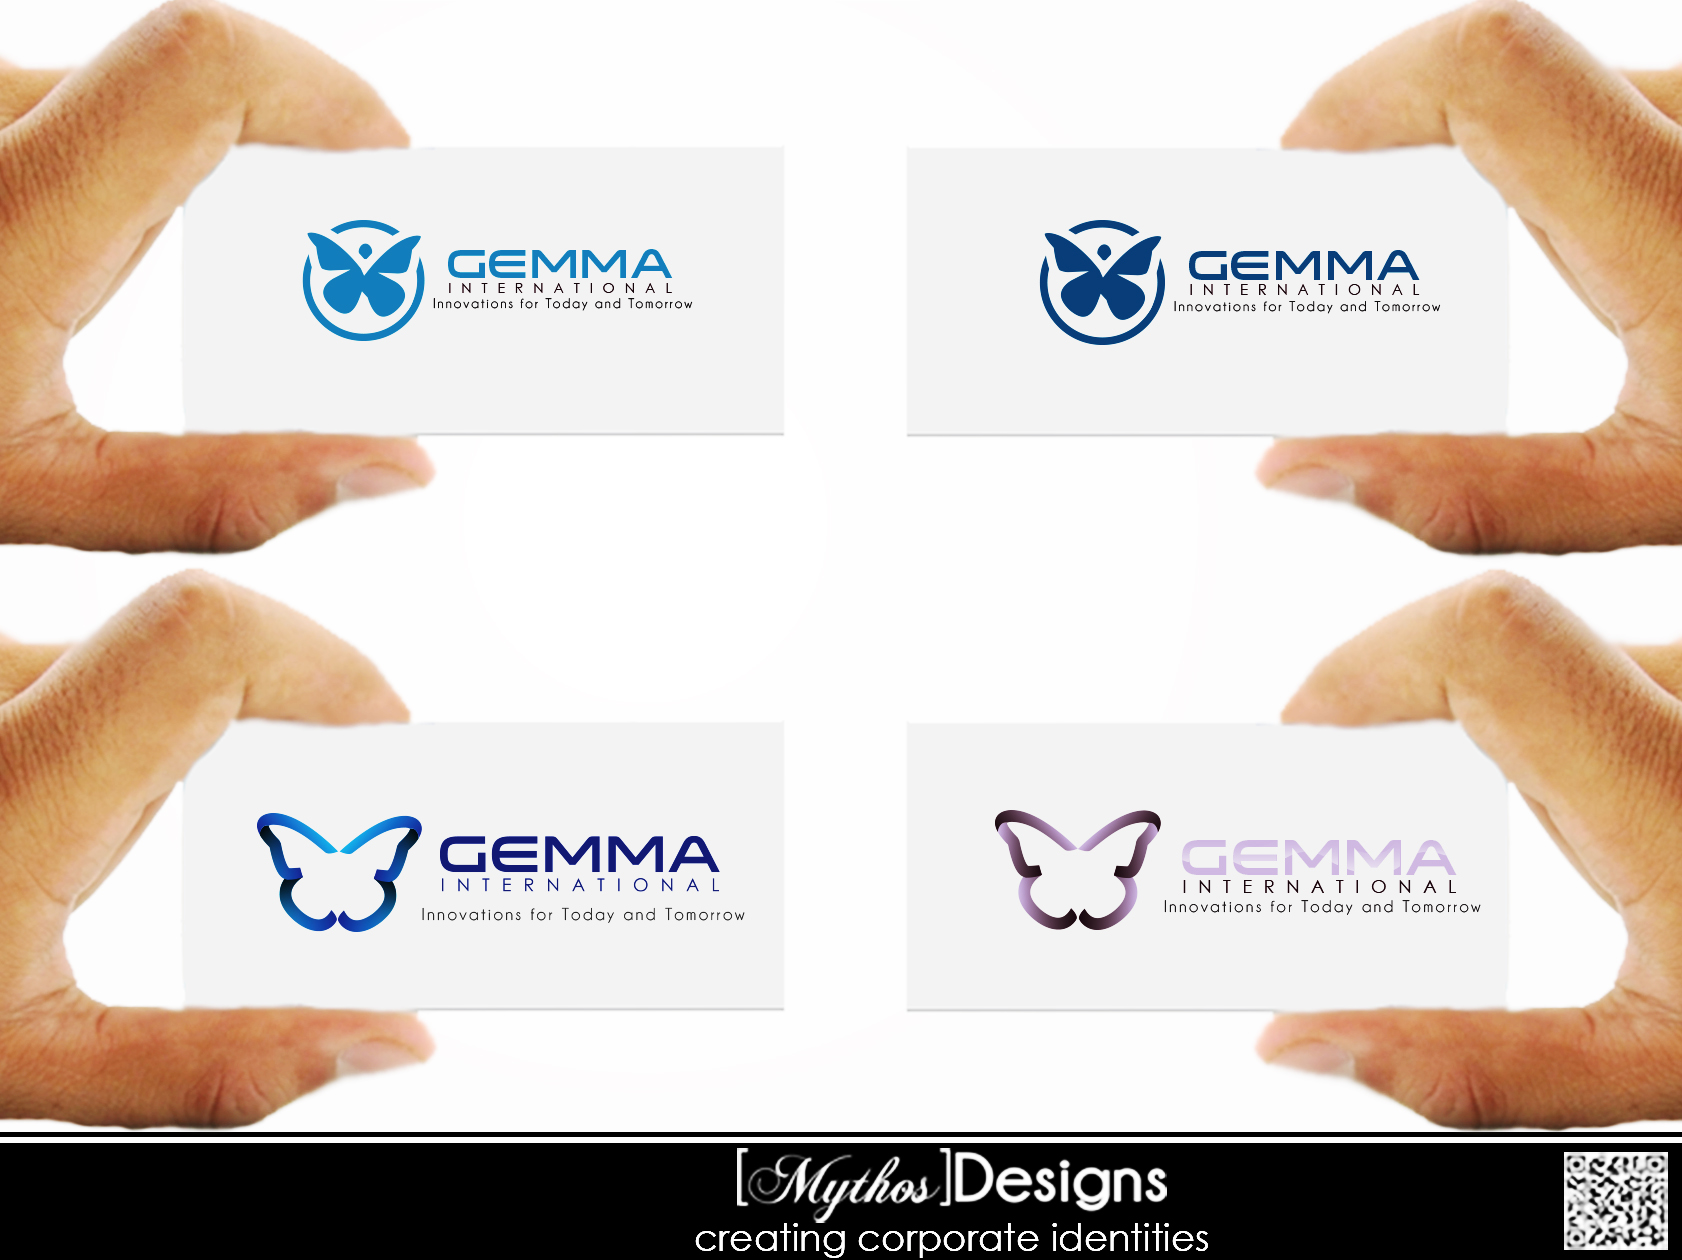 Logo Design by Mythos Designs - Entry No. 206 in the Logo Design Contest Artistic Logo Design for Gemma International.